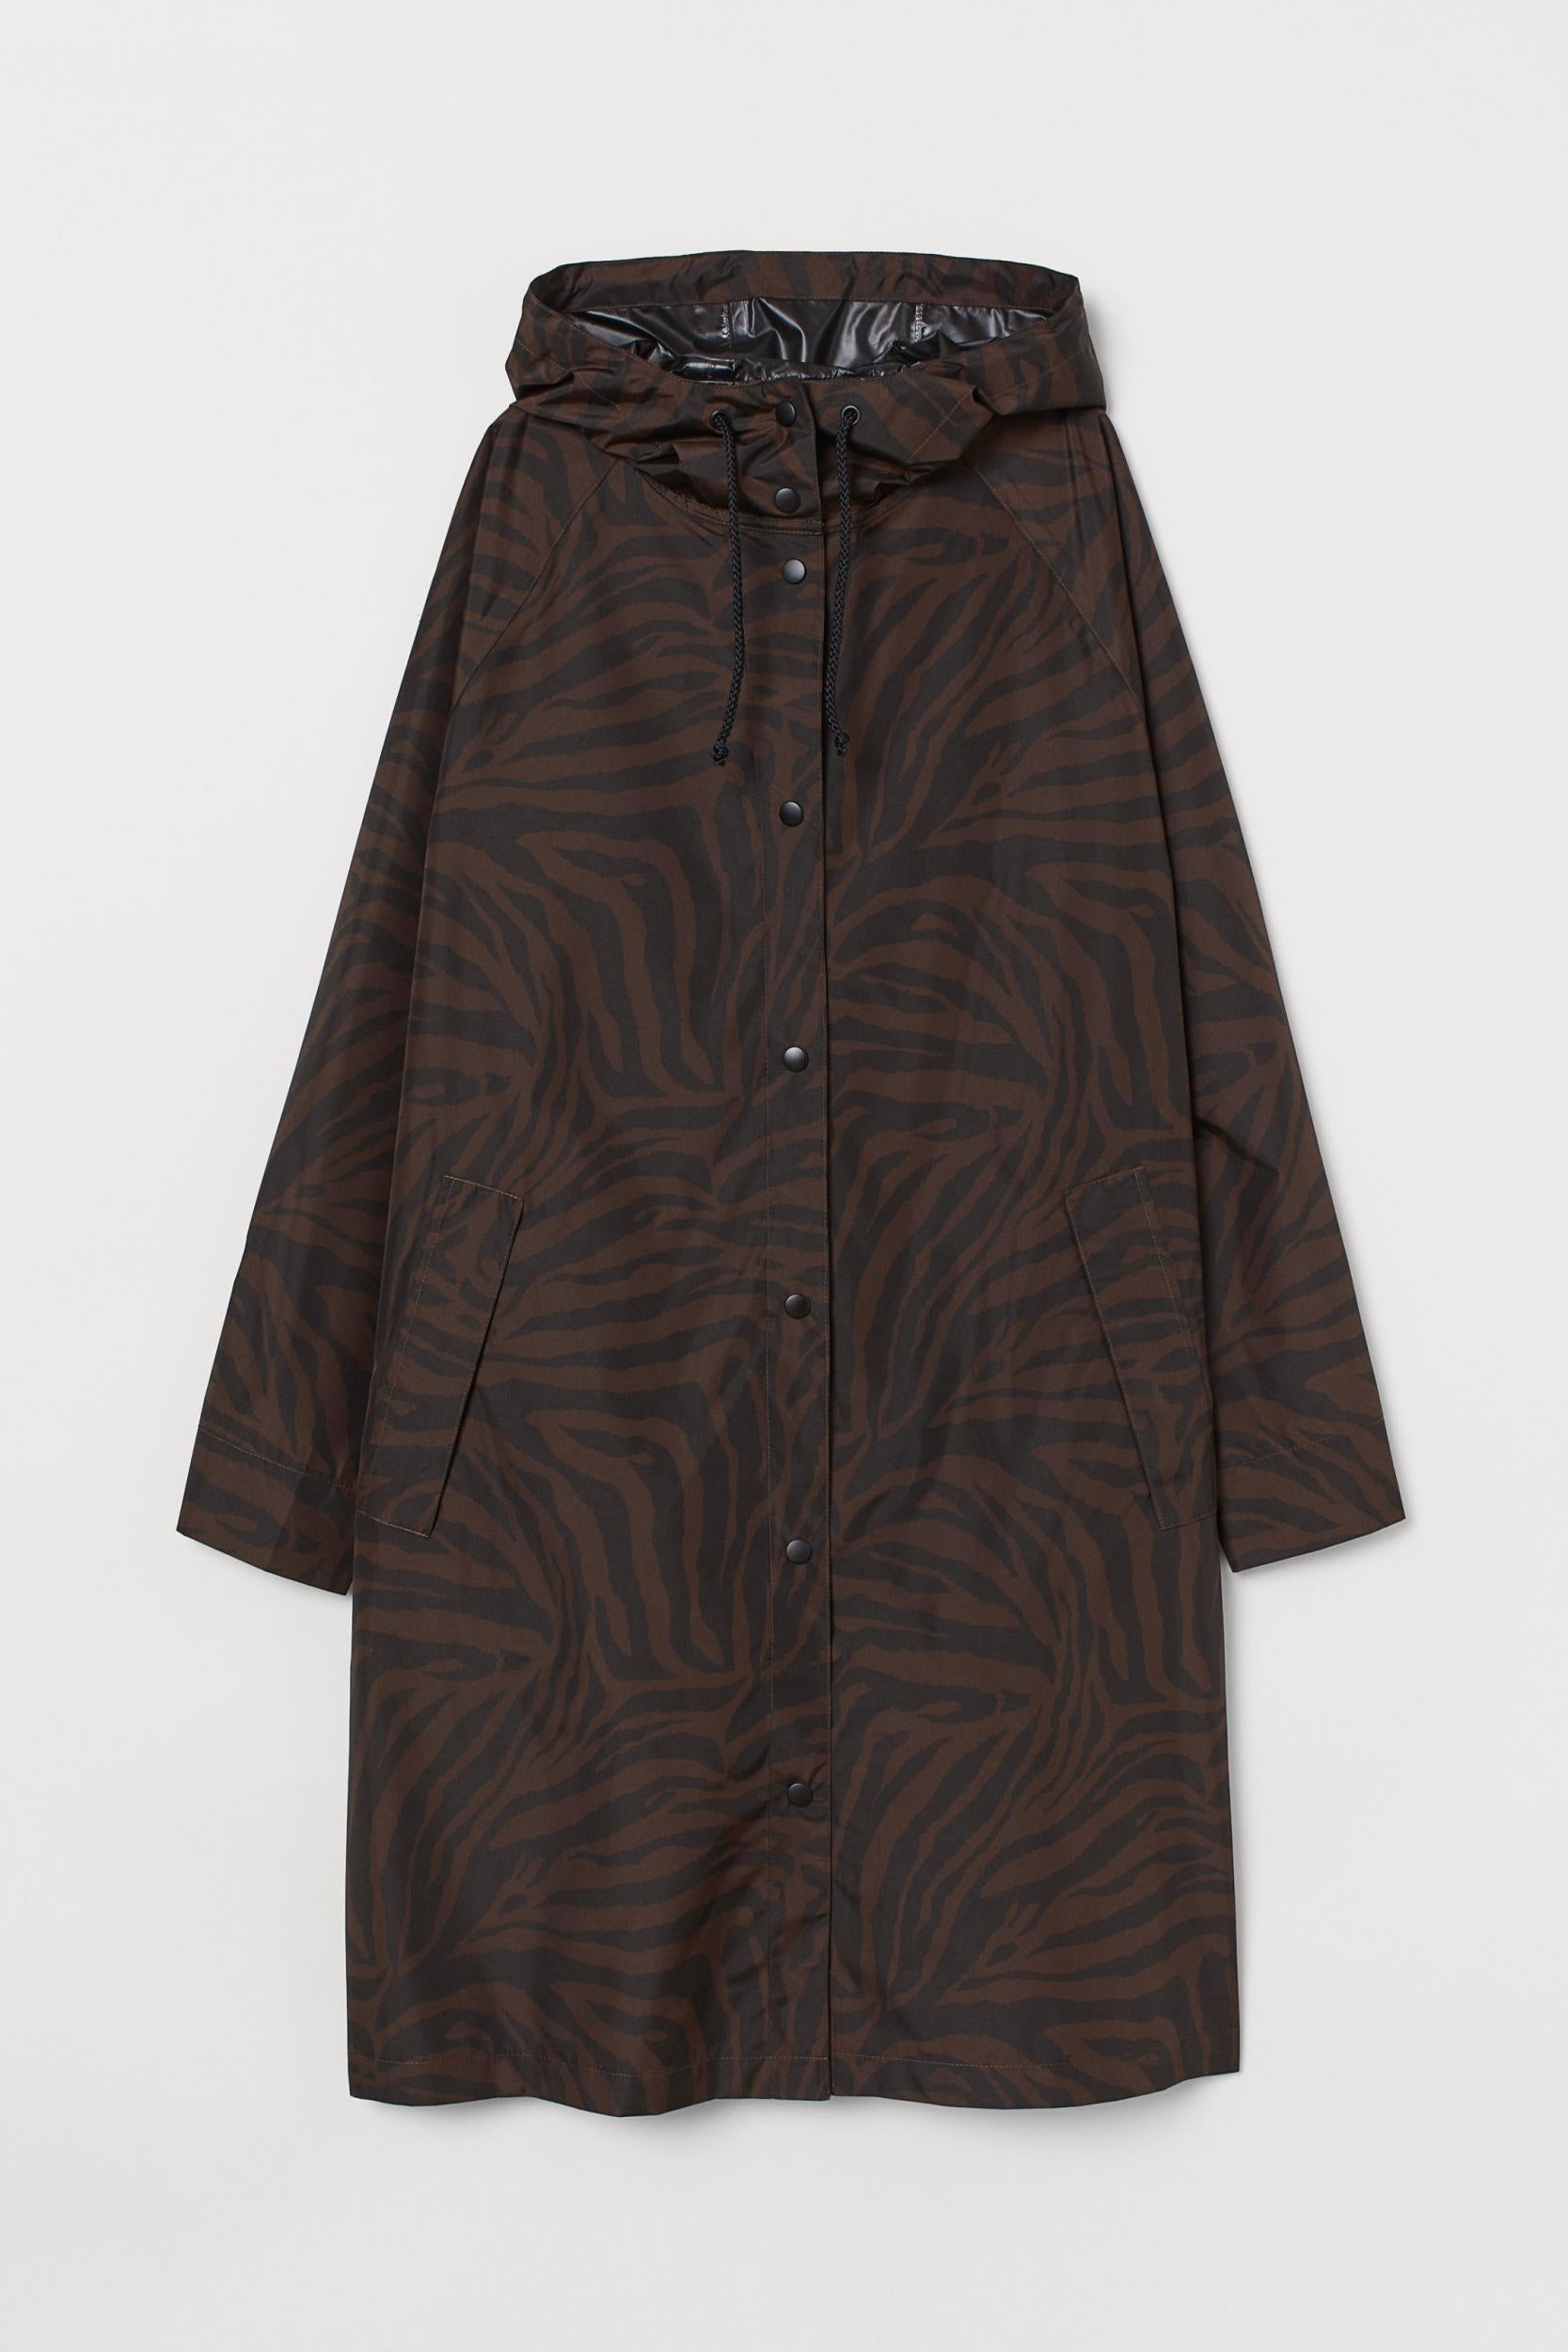 search for newest new authentic select for clearance Autumn fashion: The most stylish raincoats to battle the UK ...